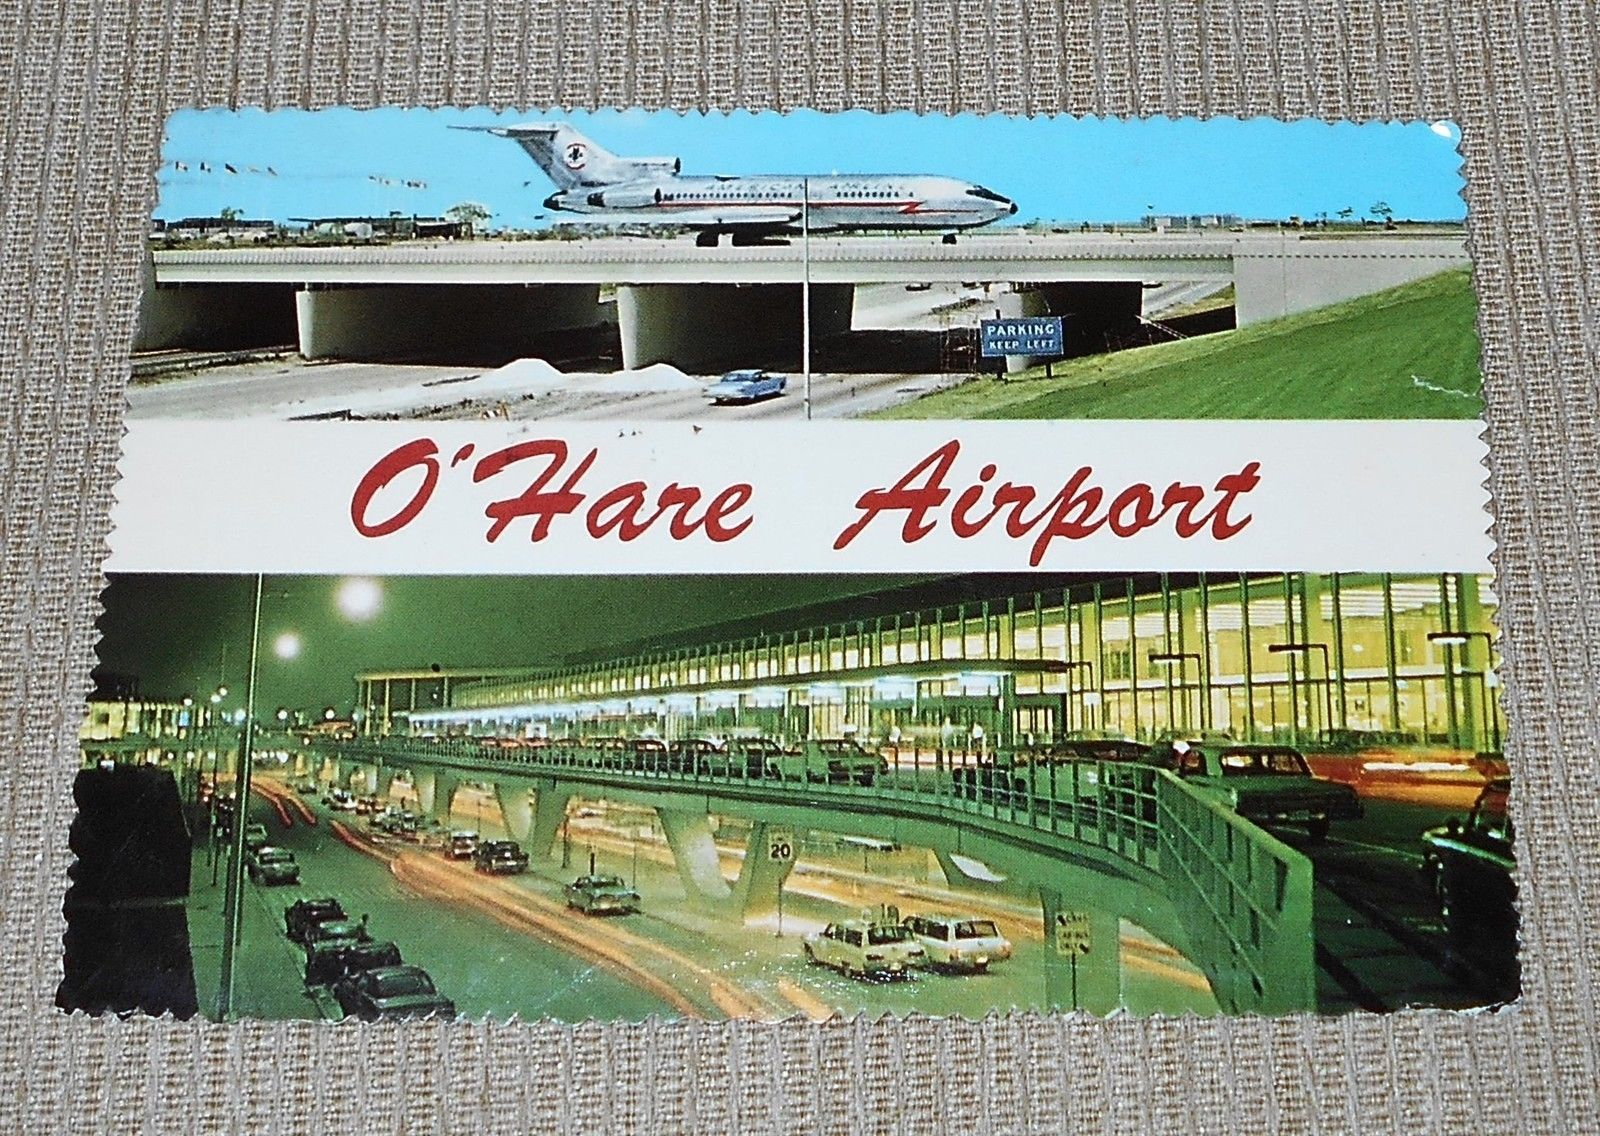 O'Hare International Airport, Chicago, IL - 2 Views - Postmarked 1974